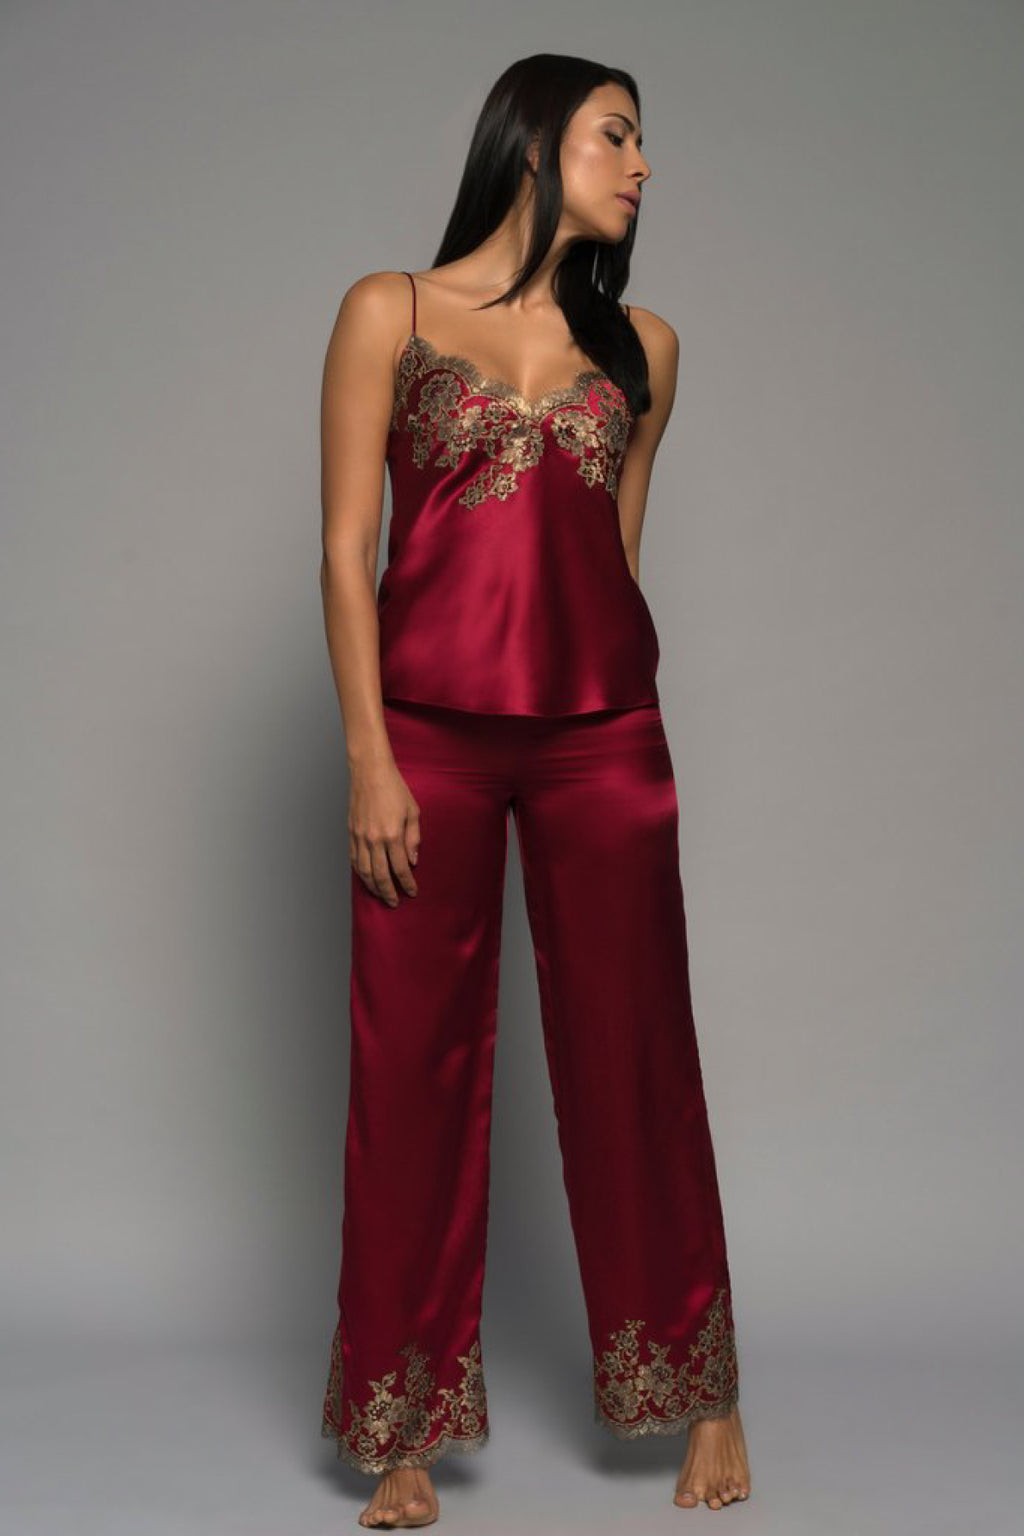 Cherry Gilded Rose Silk Pyjama Pants Sleepwear The Fashion Advocate ethical Australian fashion designer boutique Melbourne sustainable clothes